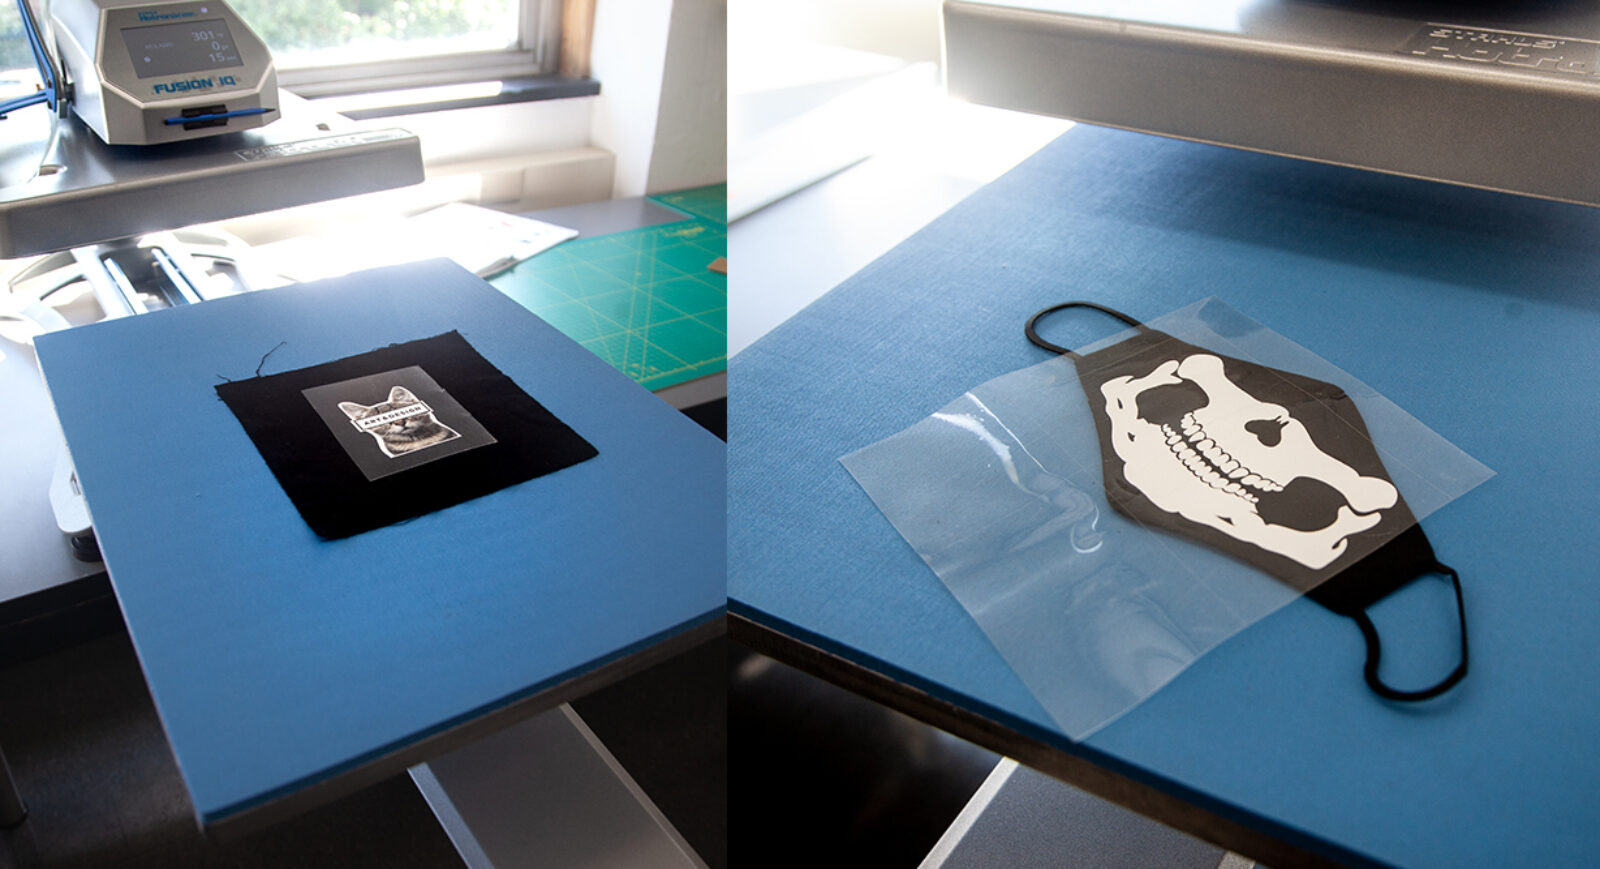 fabric with vinyl and application tape on the lower platen